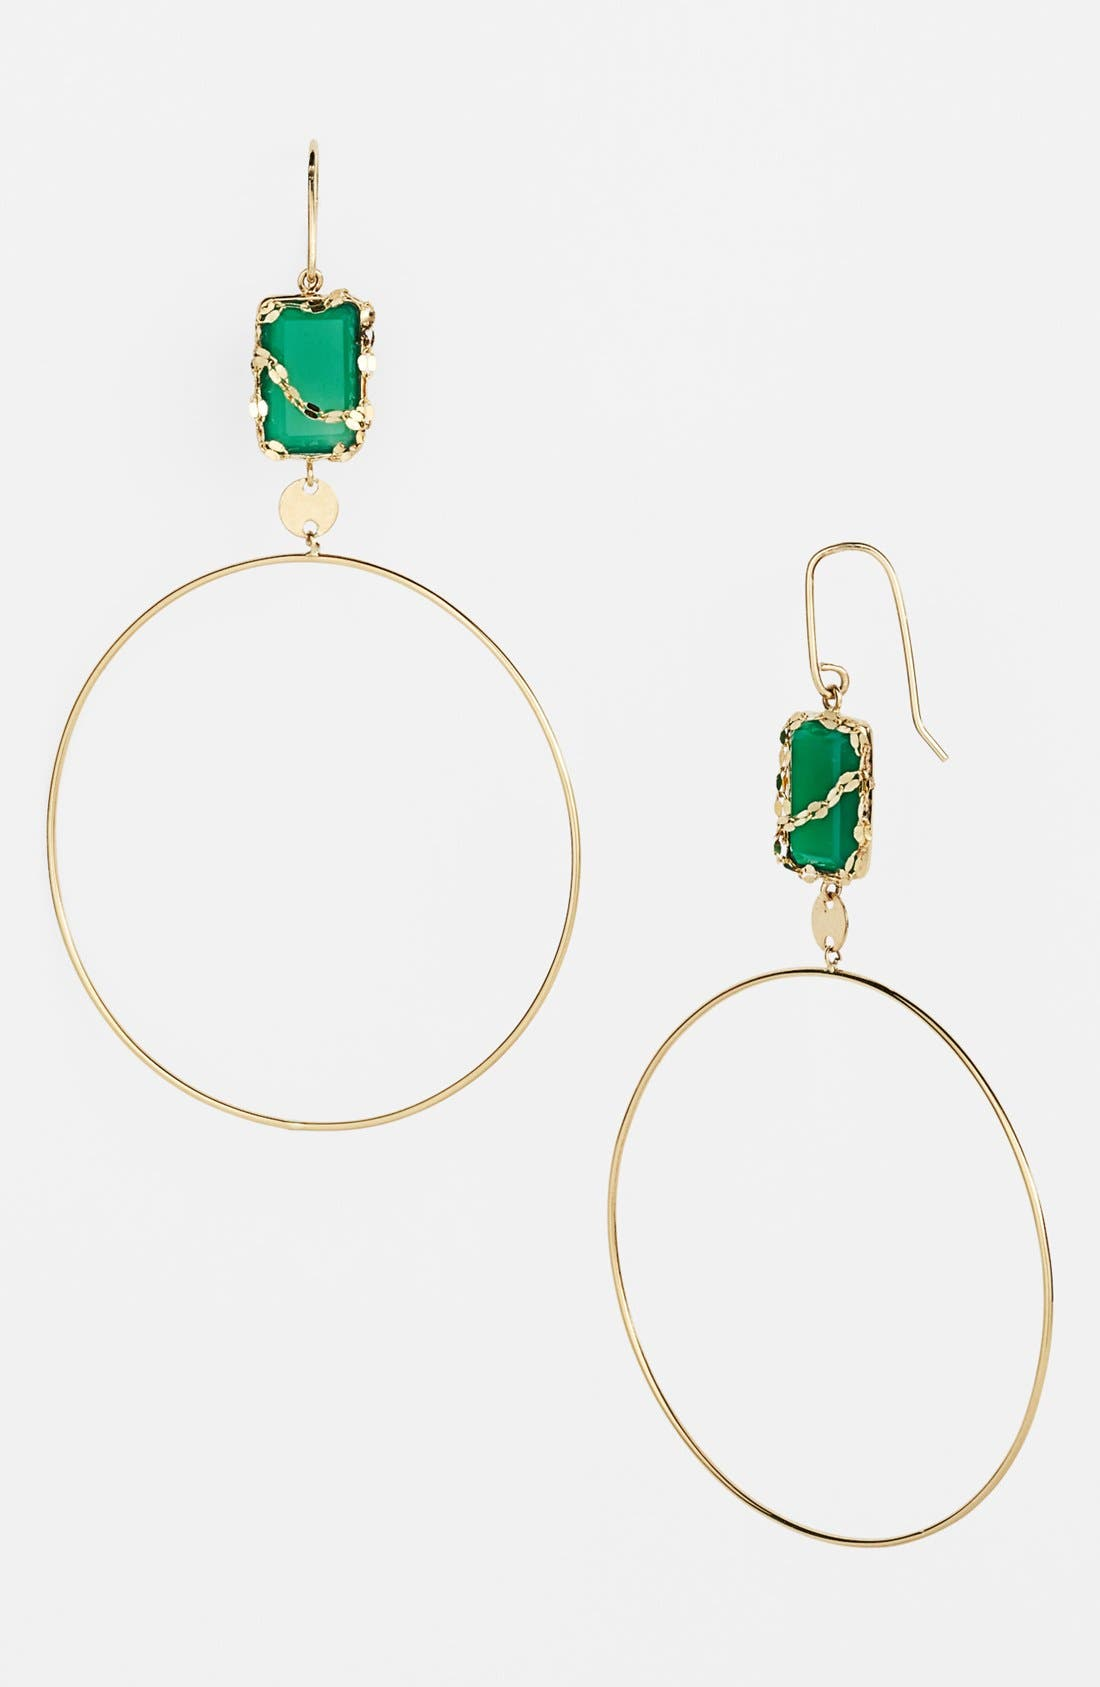 Main Image - Lana Jewelry 'Spellbound - Small Glow' Dangle Hoop Earrings (Nordstrom Exclusive)